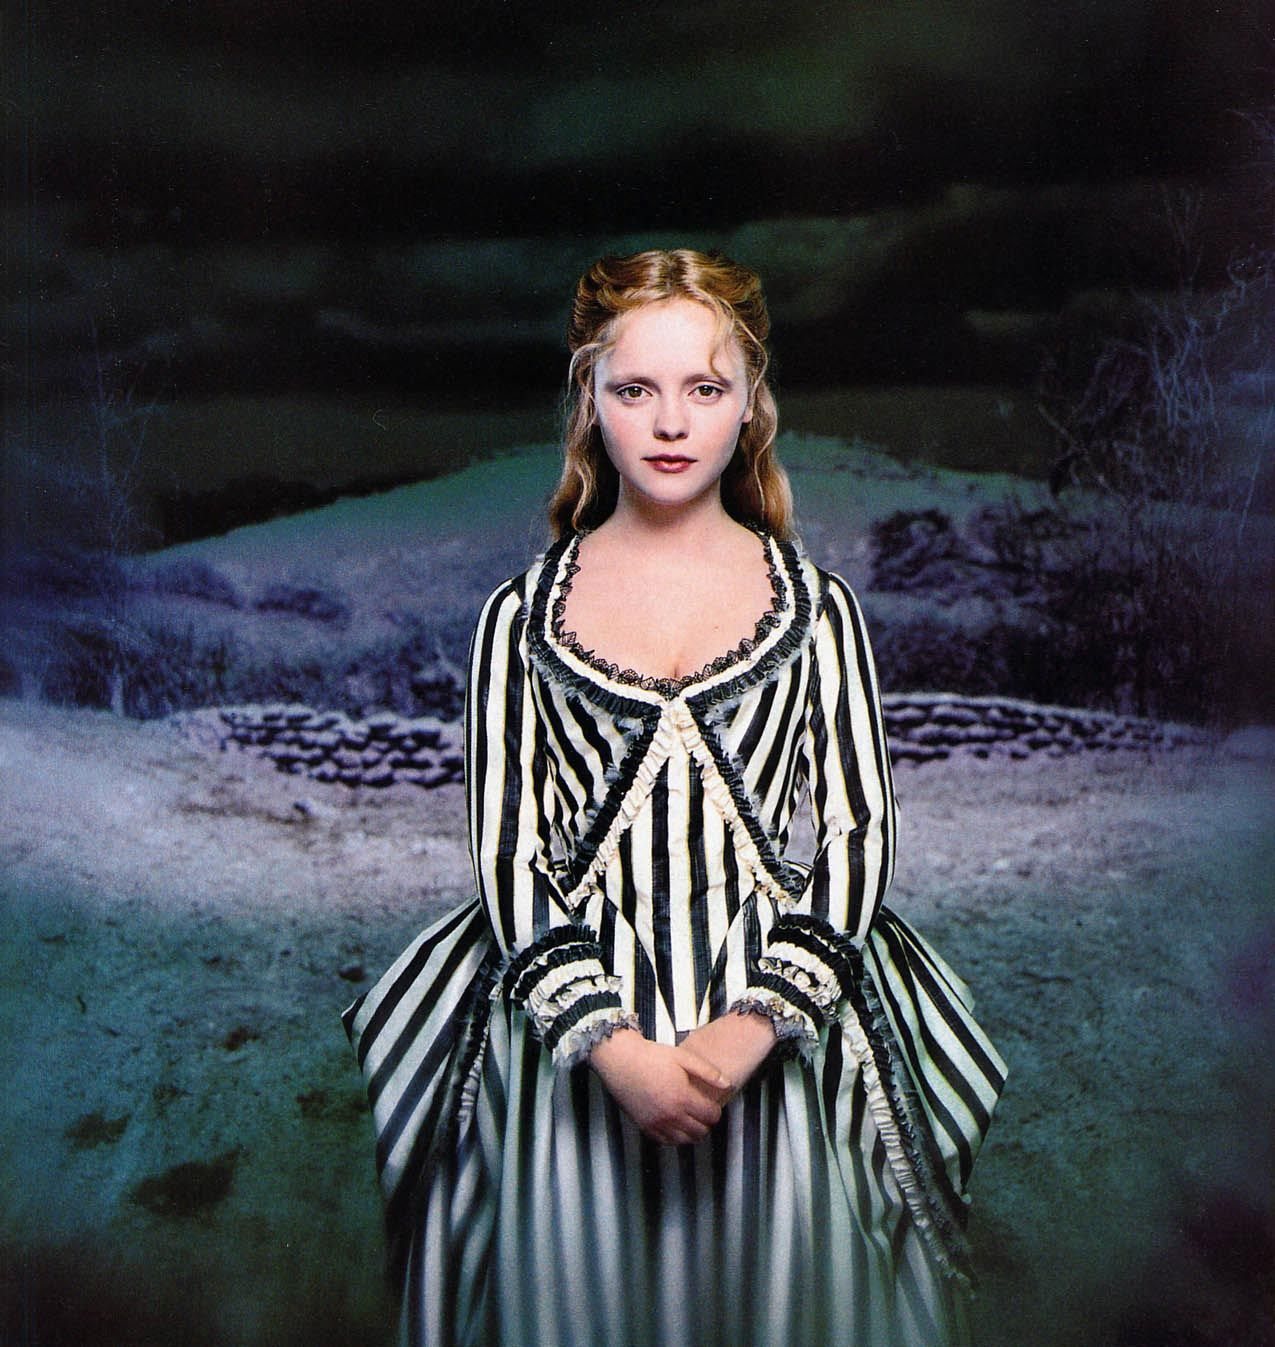 christina ricci in sleepy hollow costumes by colleen atwood - Sleepy Hollow Halloween Costumes